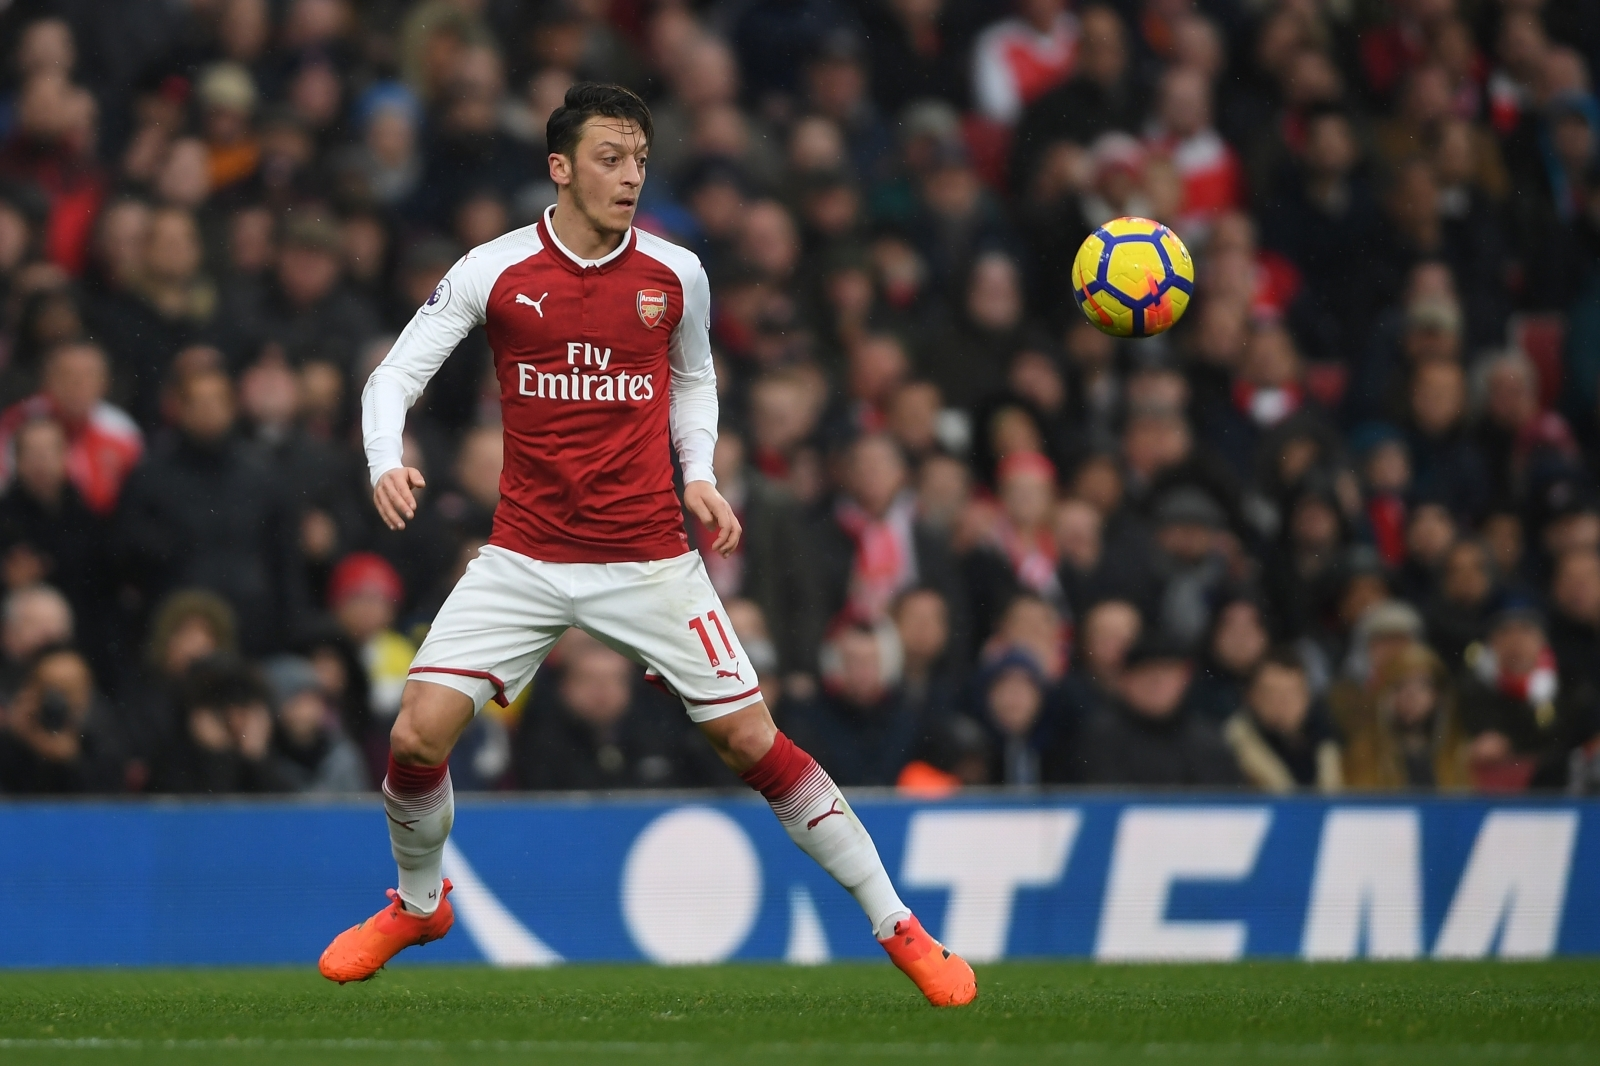 Arsenal midfielder Mesut Ozil demands huge signing bonus to join Barcelona